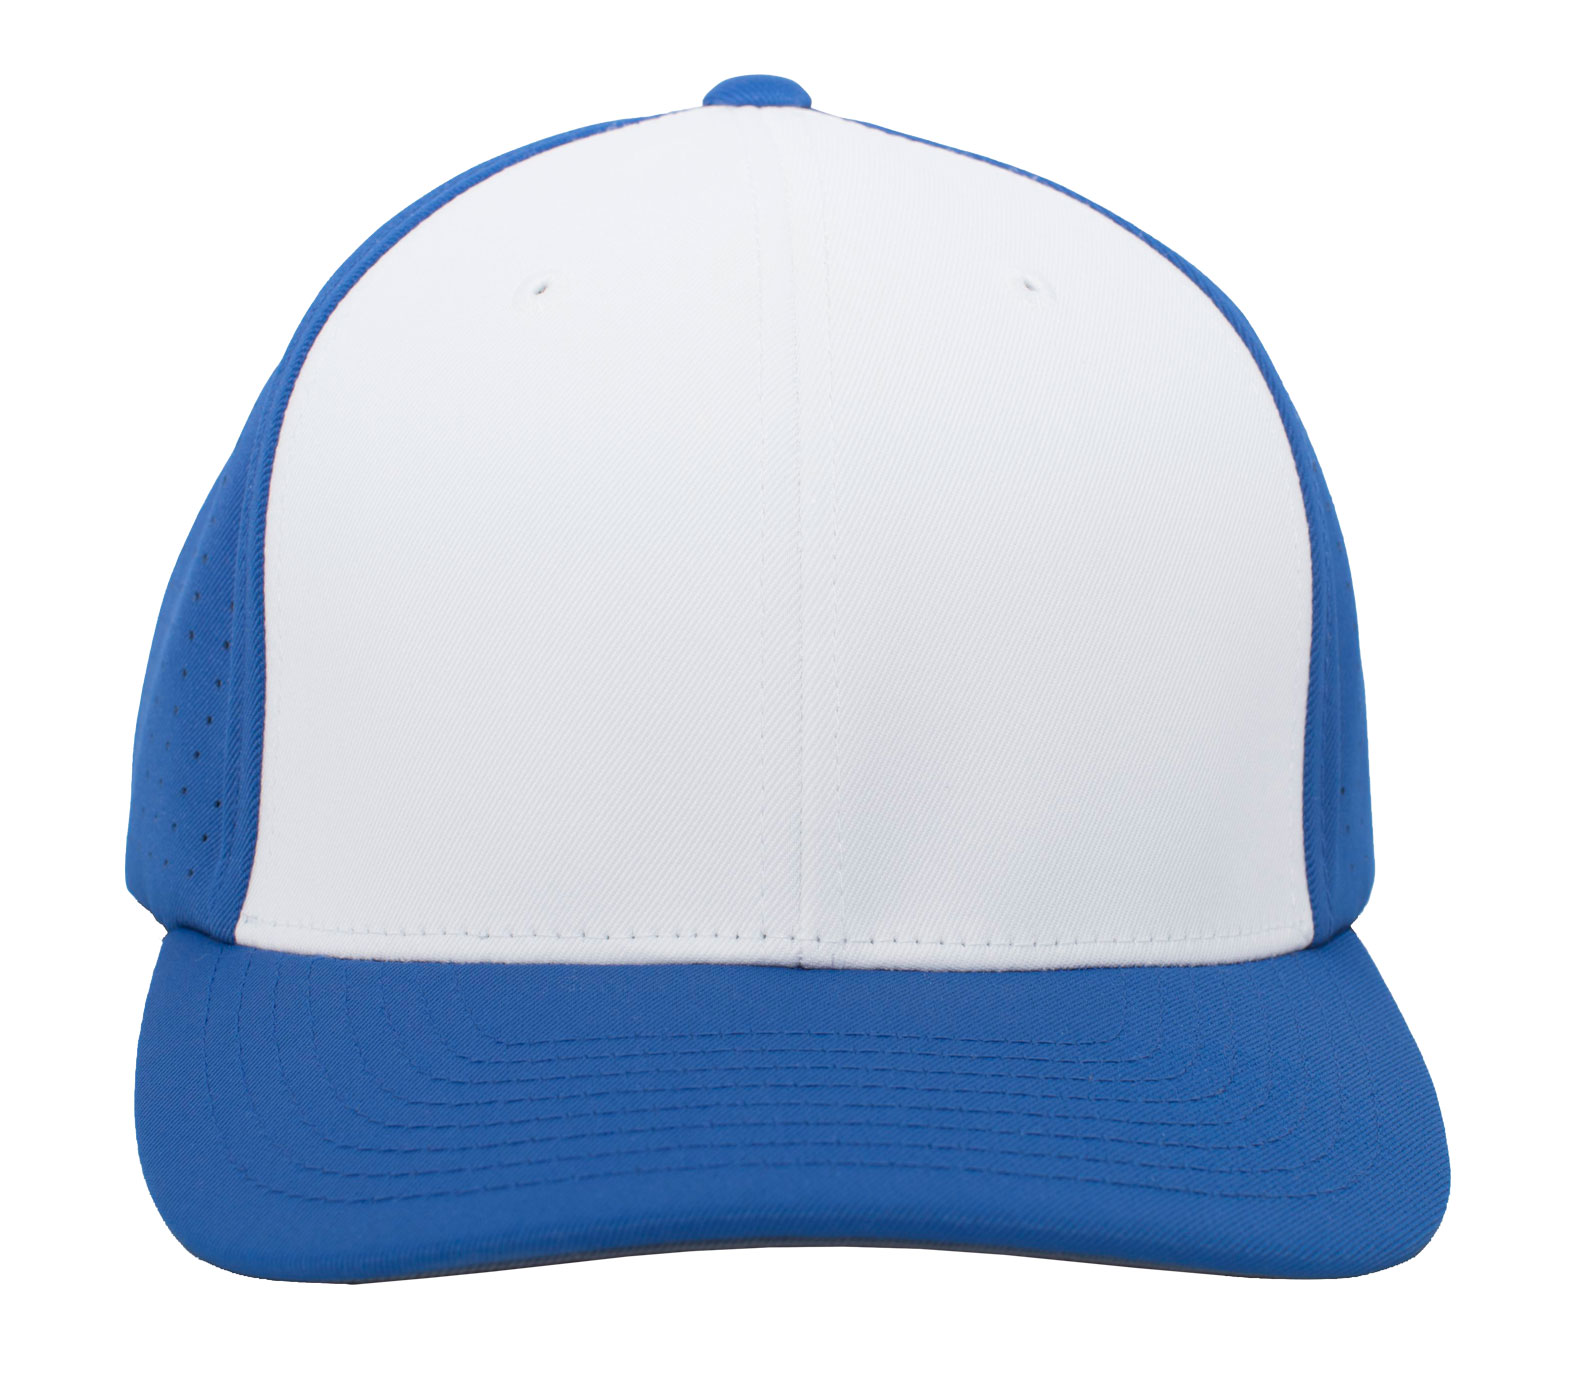 Pacific Headwear F3 Performance Flexfit® Cap